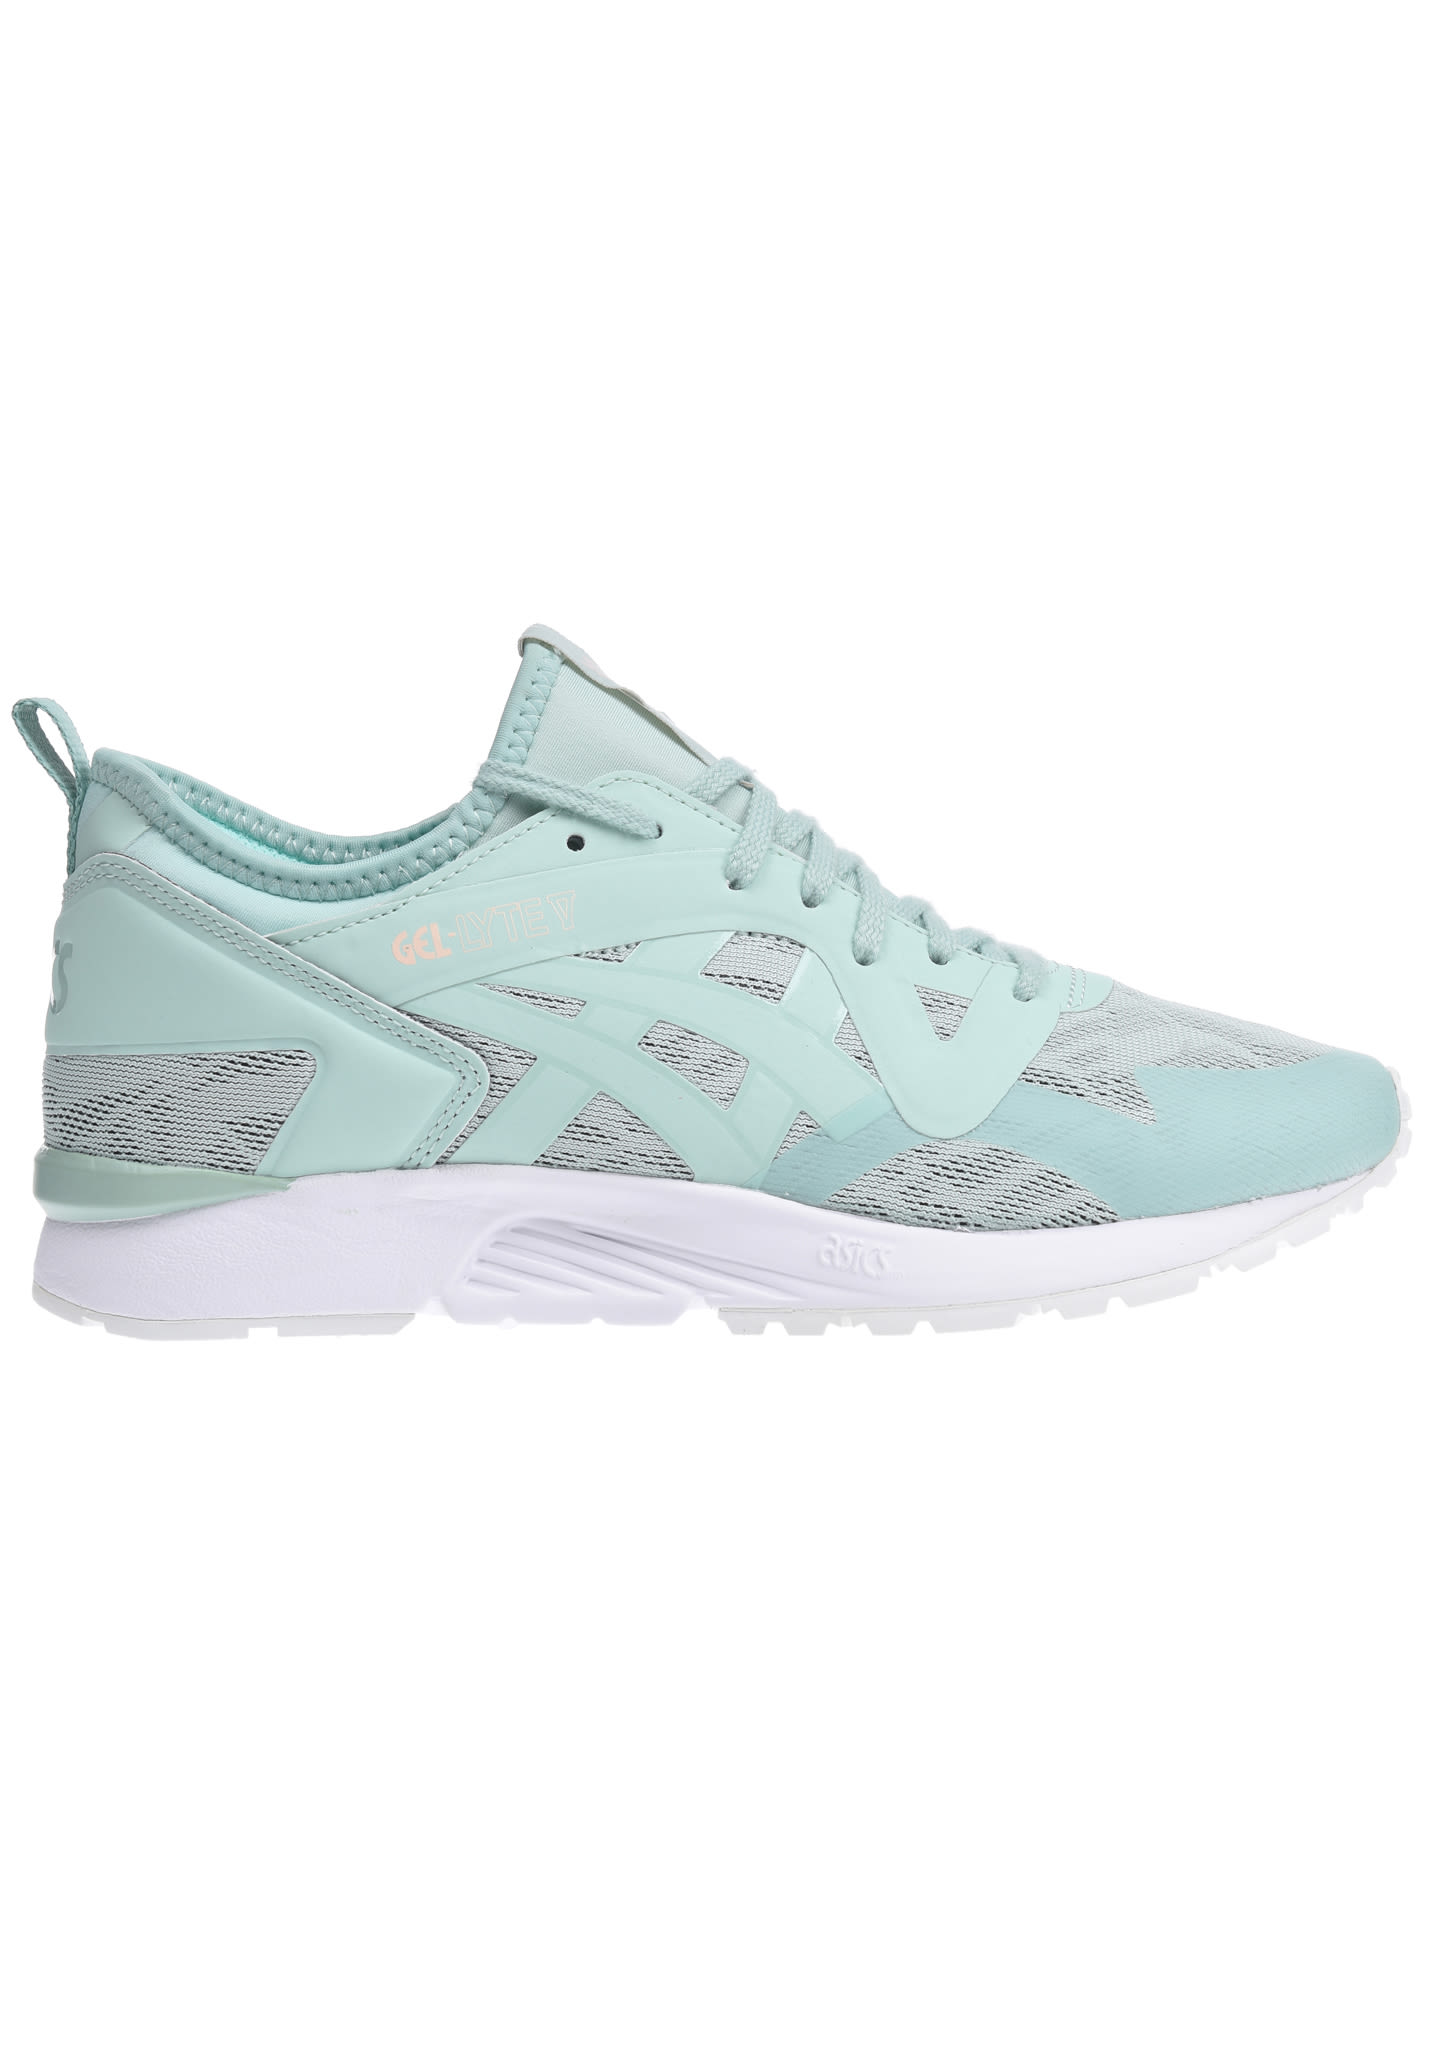 Asics Tiger Gel-Lyte V NS - Sneakers for Women - Green - Planet Sports b35bcf0c899a